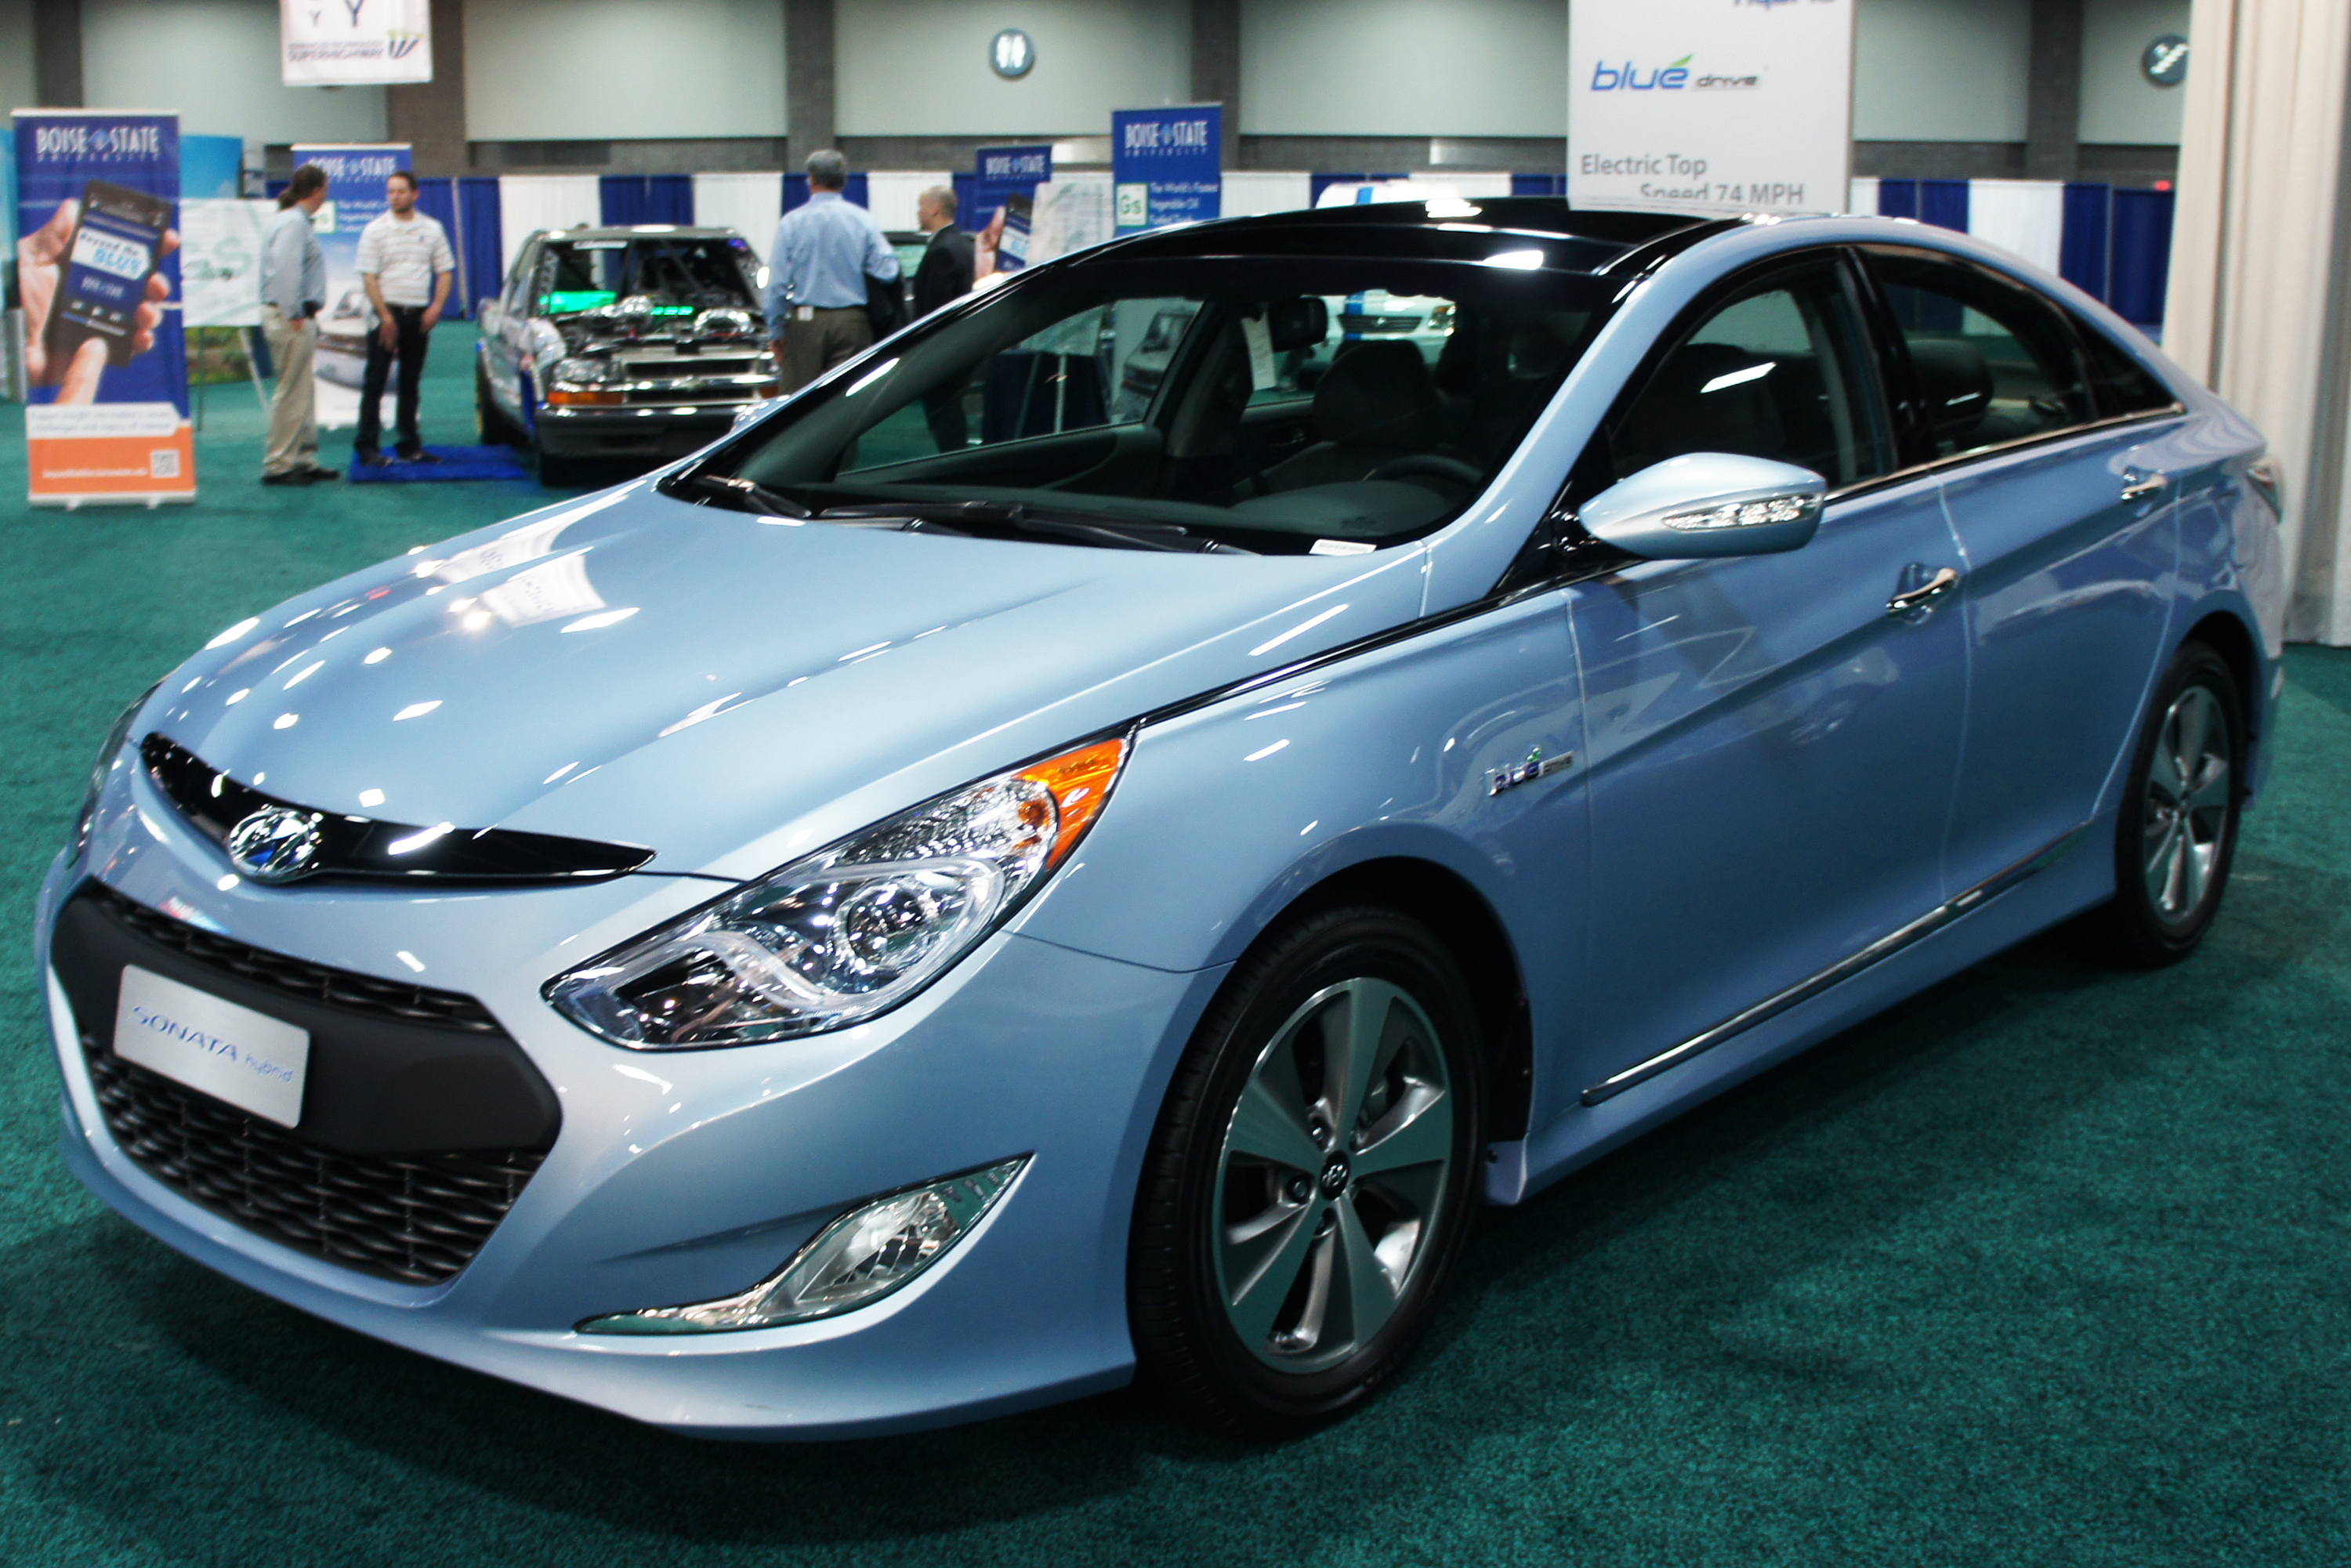 Attractive File:Hyundai Sonata Hybrid WAS 2012 0763.JPG